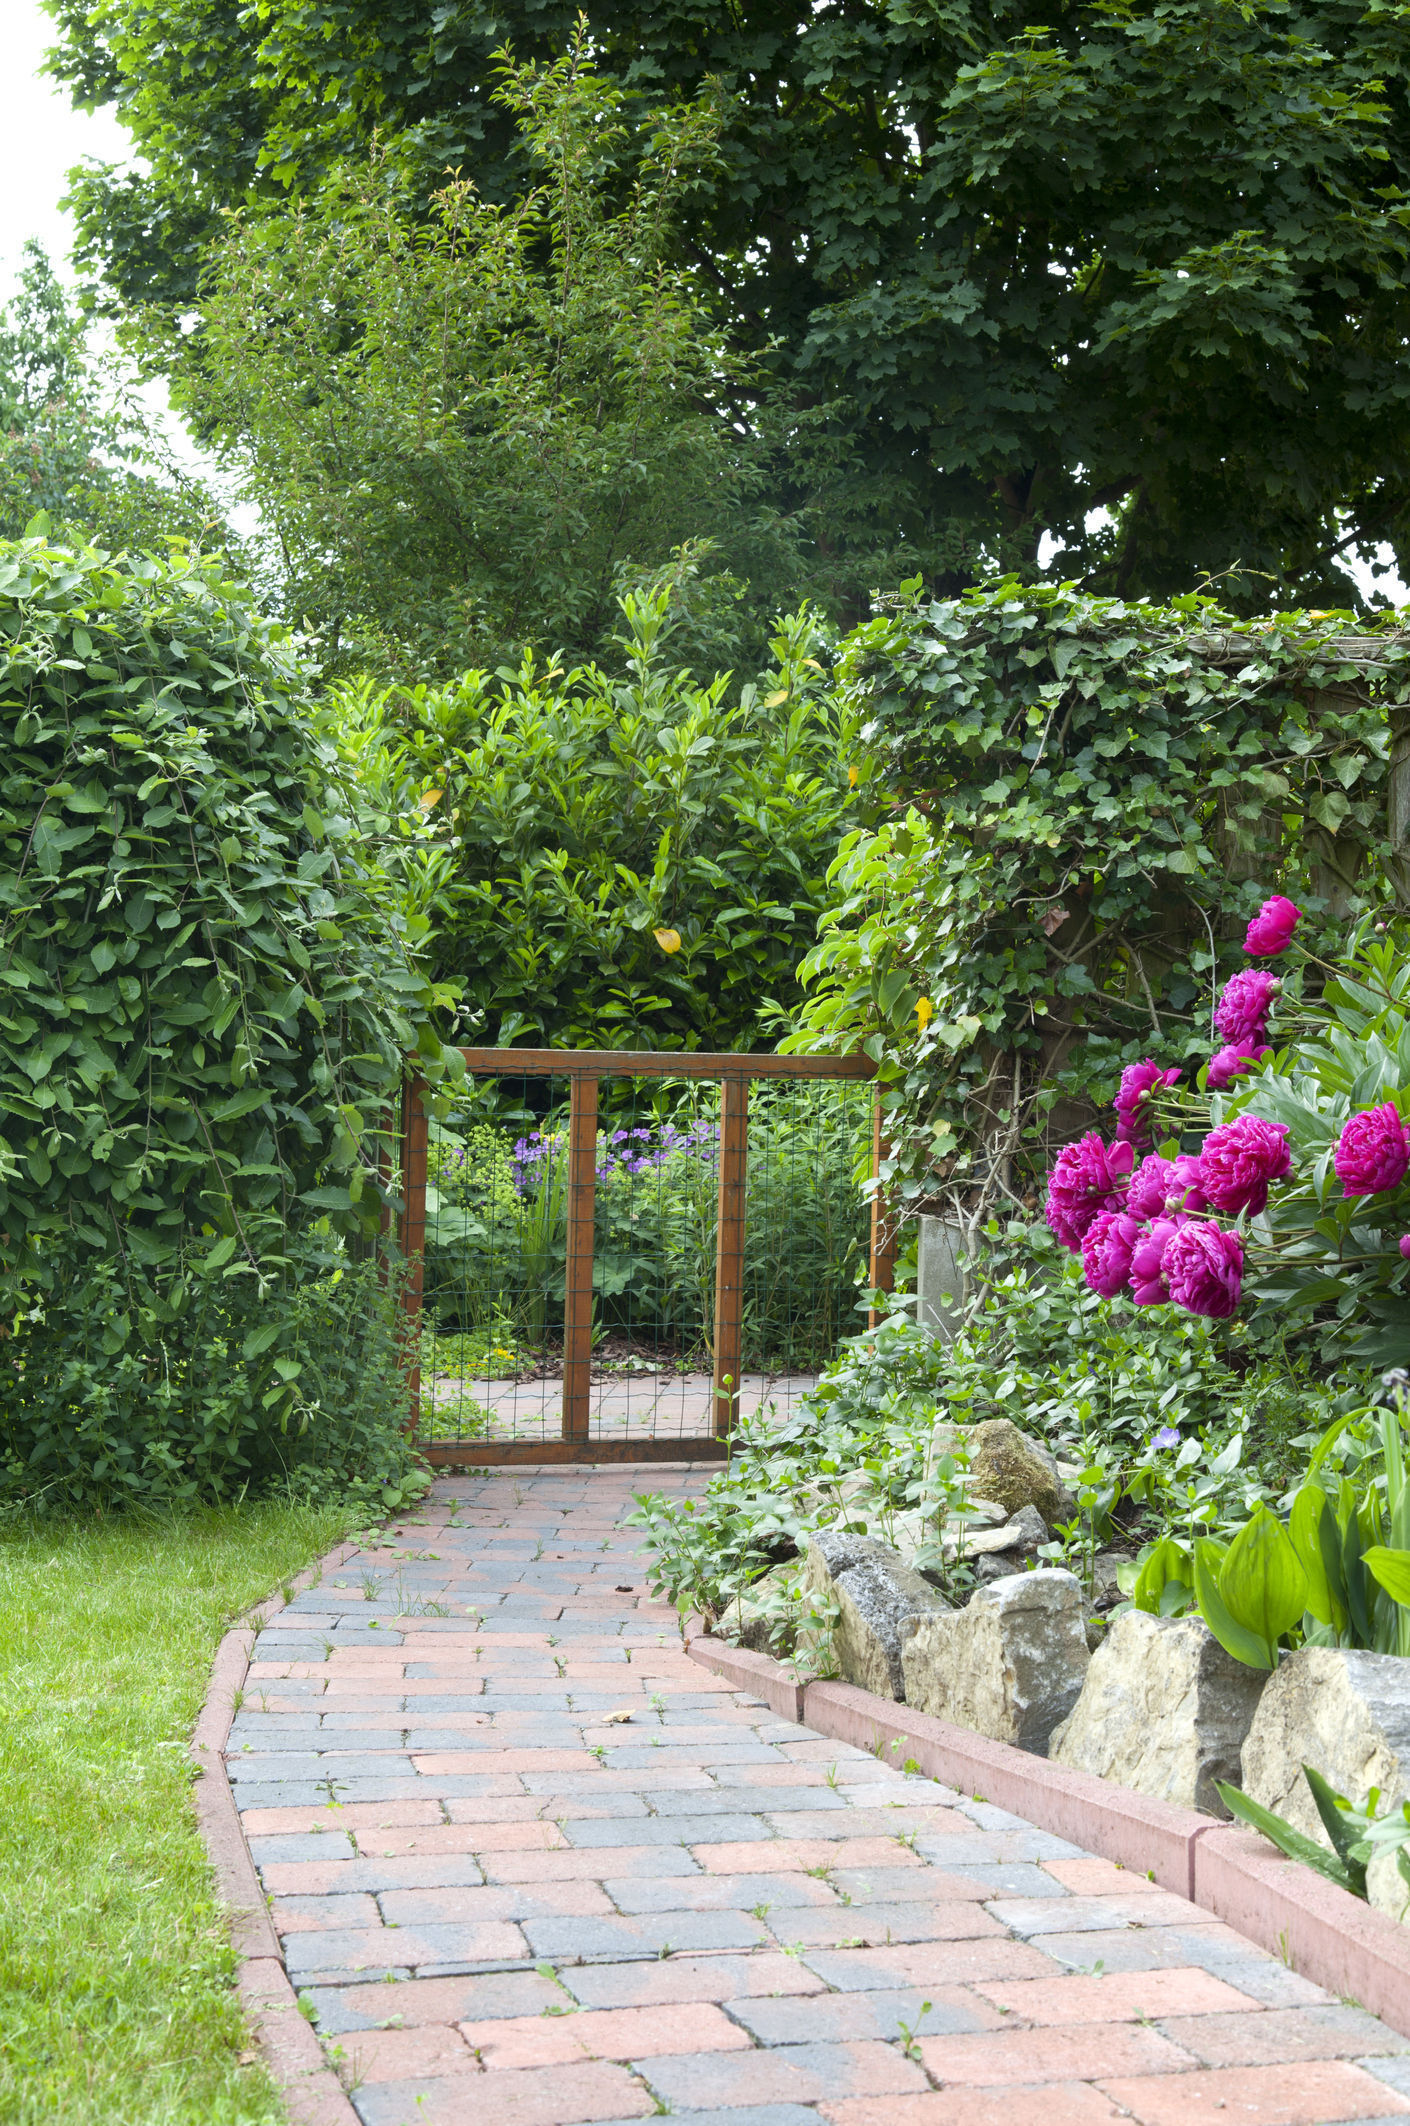 A well-maintained garden path can make all the difference